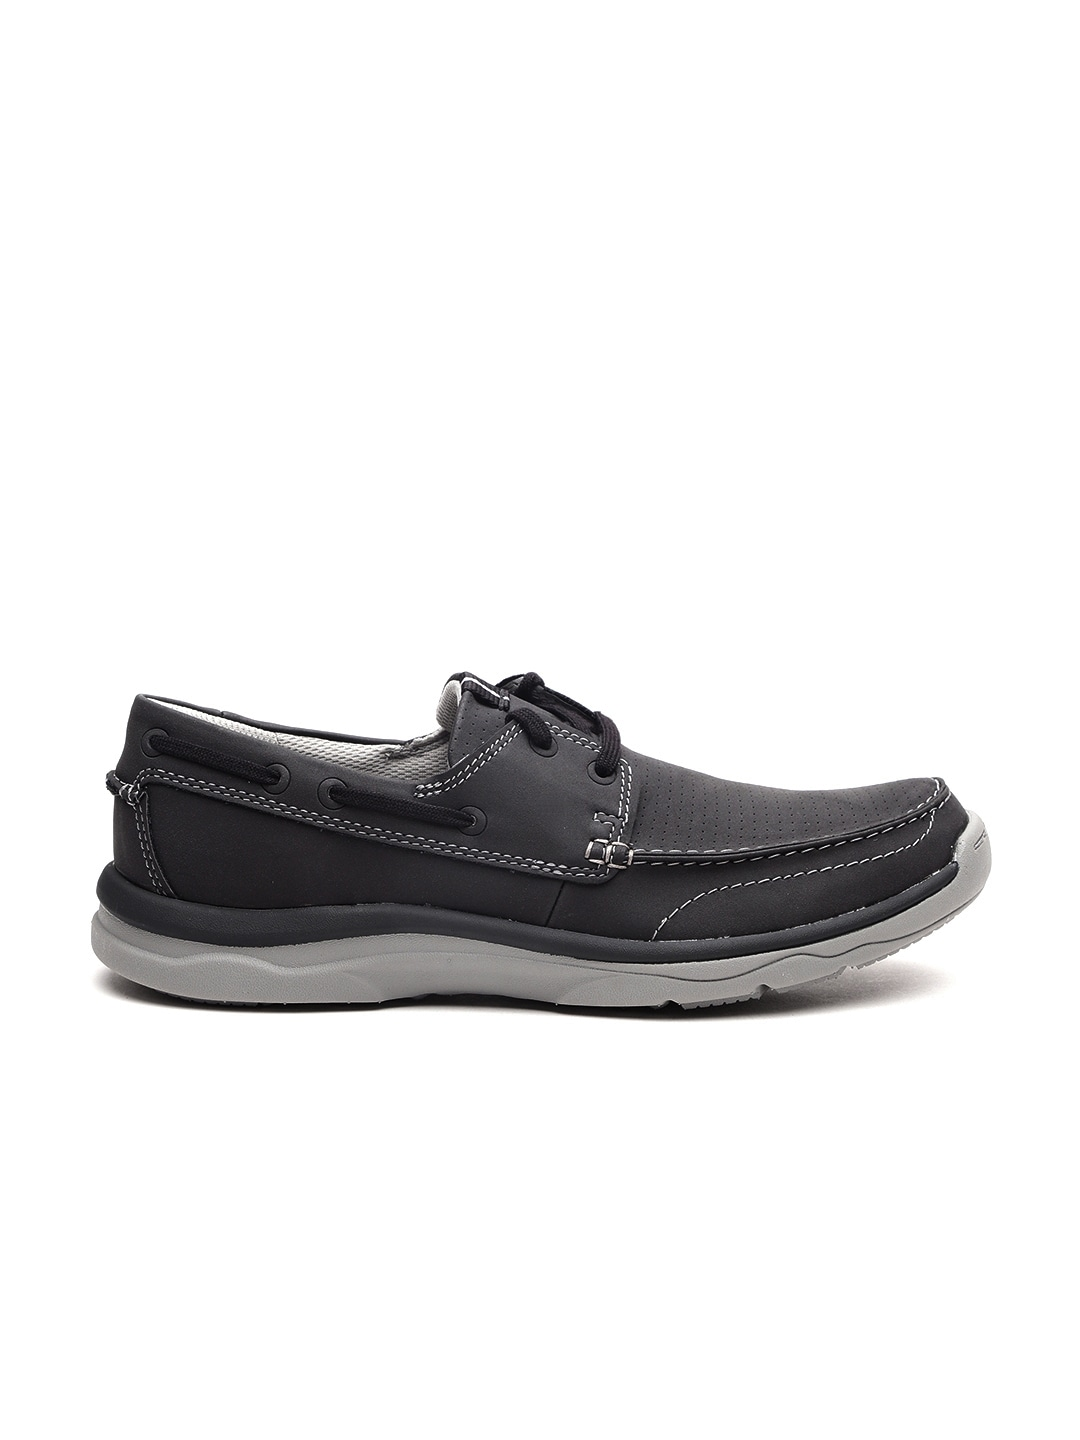 buy online dca0e 4067c Casual Shoes For Men - Buy Casual   Flat Shoes For Men   Myntra